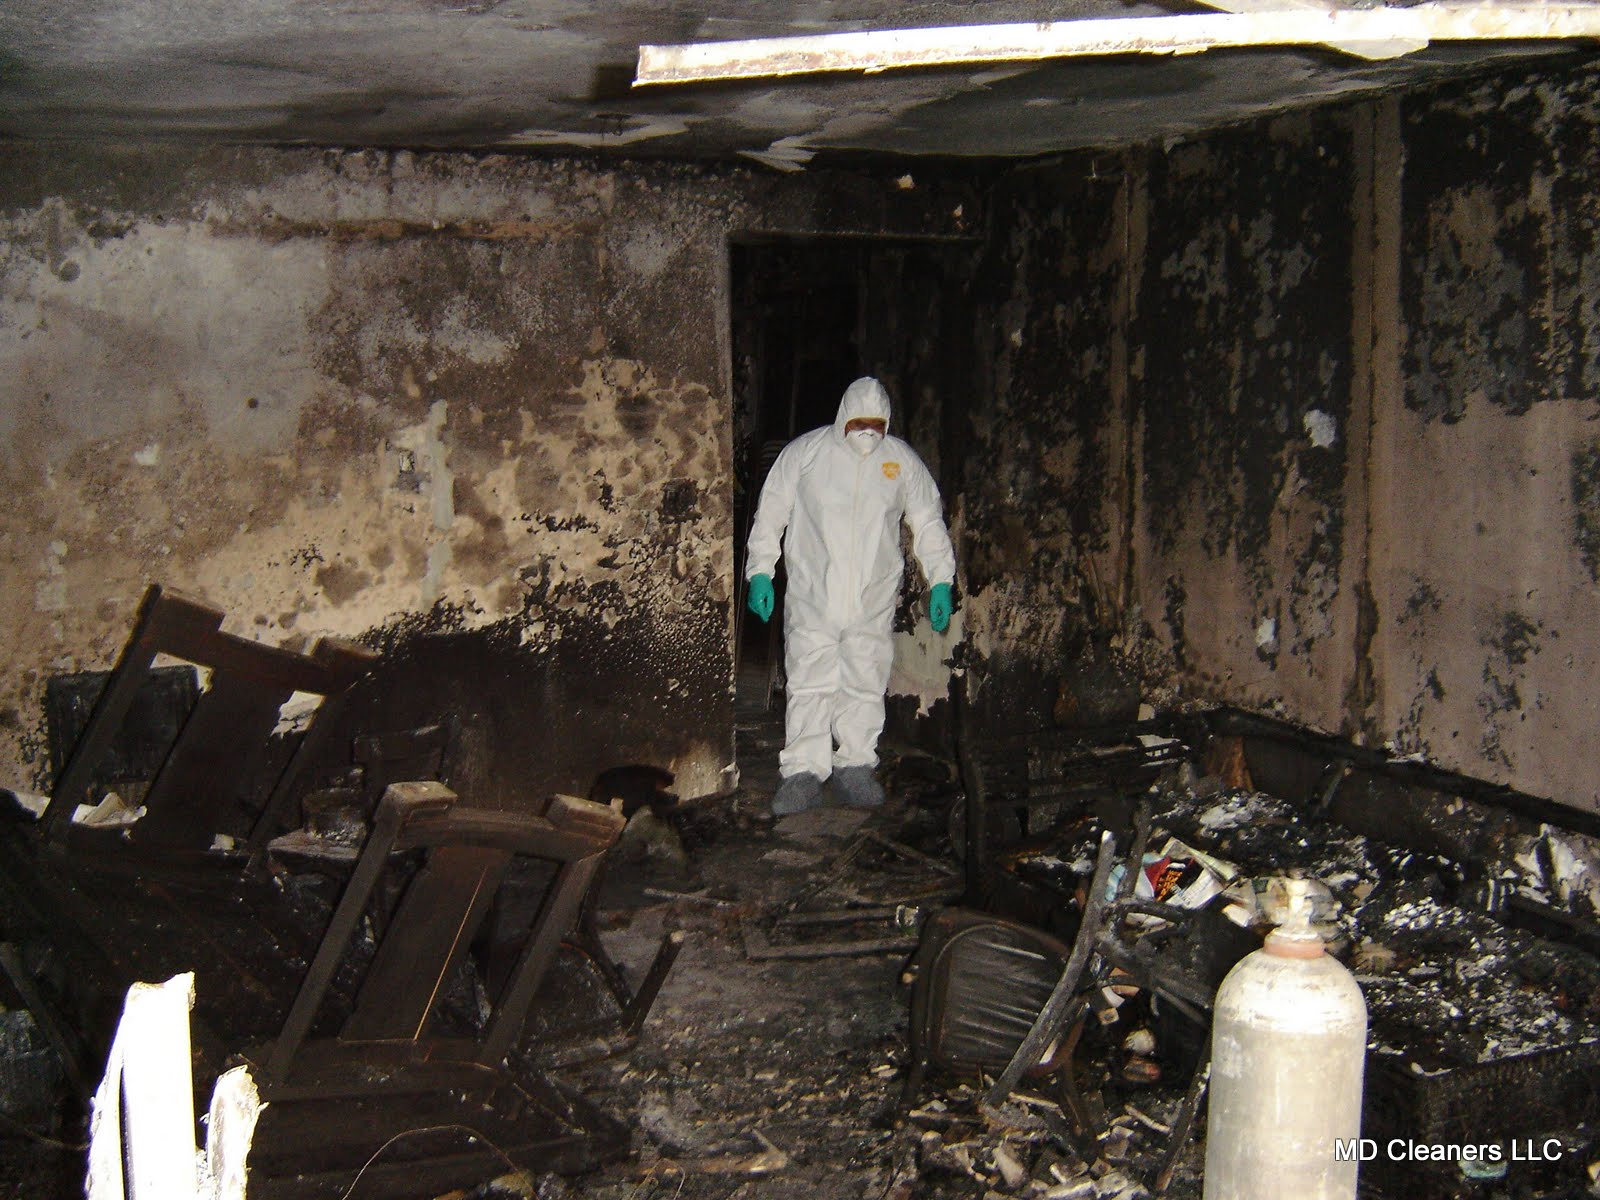 Miami Dade Fire, Mold, and Water Restoration Services-We do home restoration services like Servpro such as water damage restoration, water removal, mold removal, fire and smoke damage services, fire damage restoration, mold remediation inspection, and more